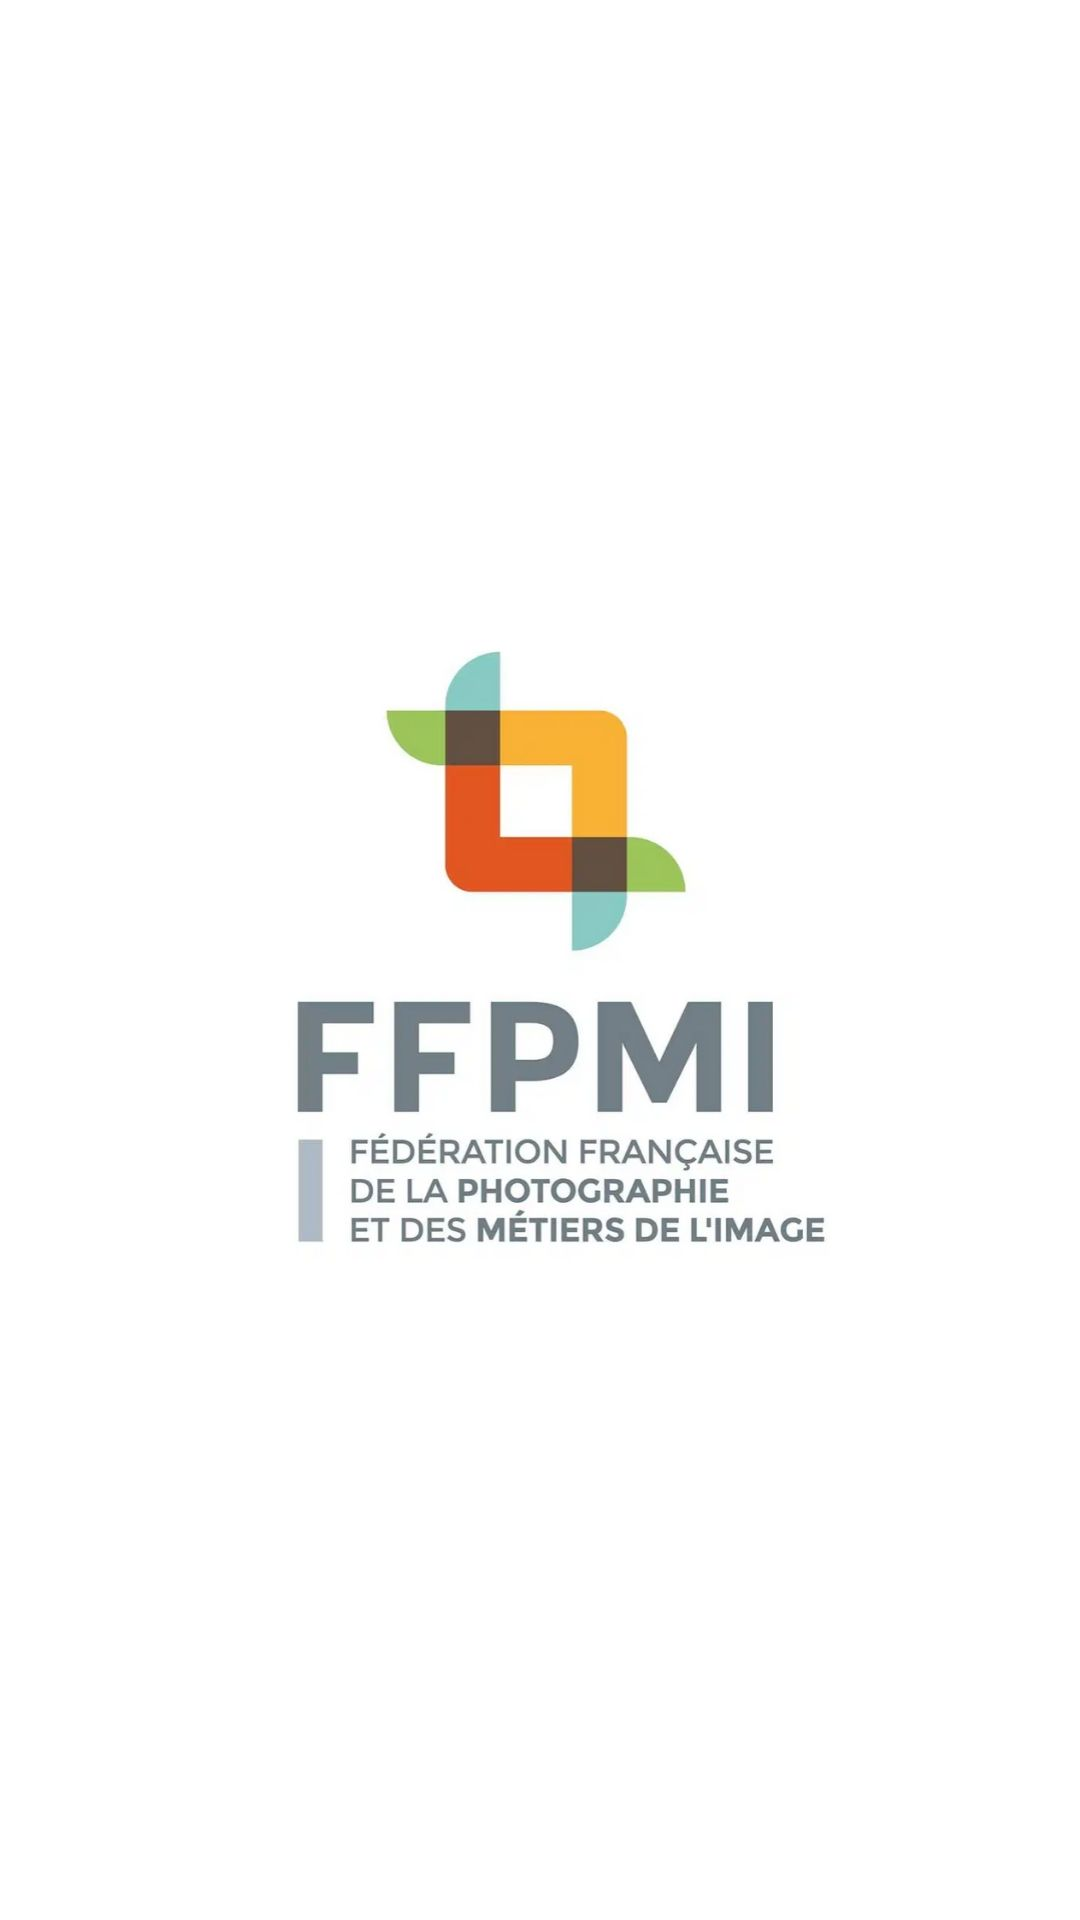 image-article-guide-covid-19-FFPMI-photographe-matpix_studio